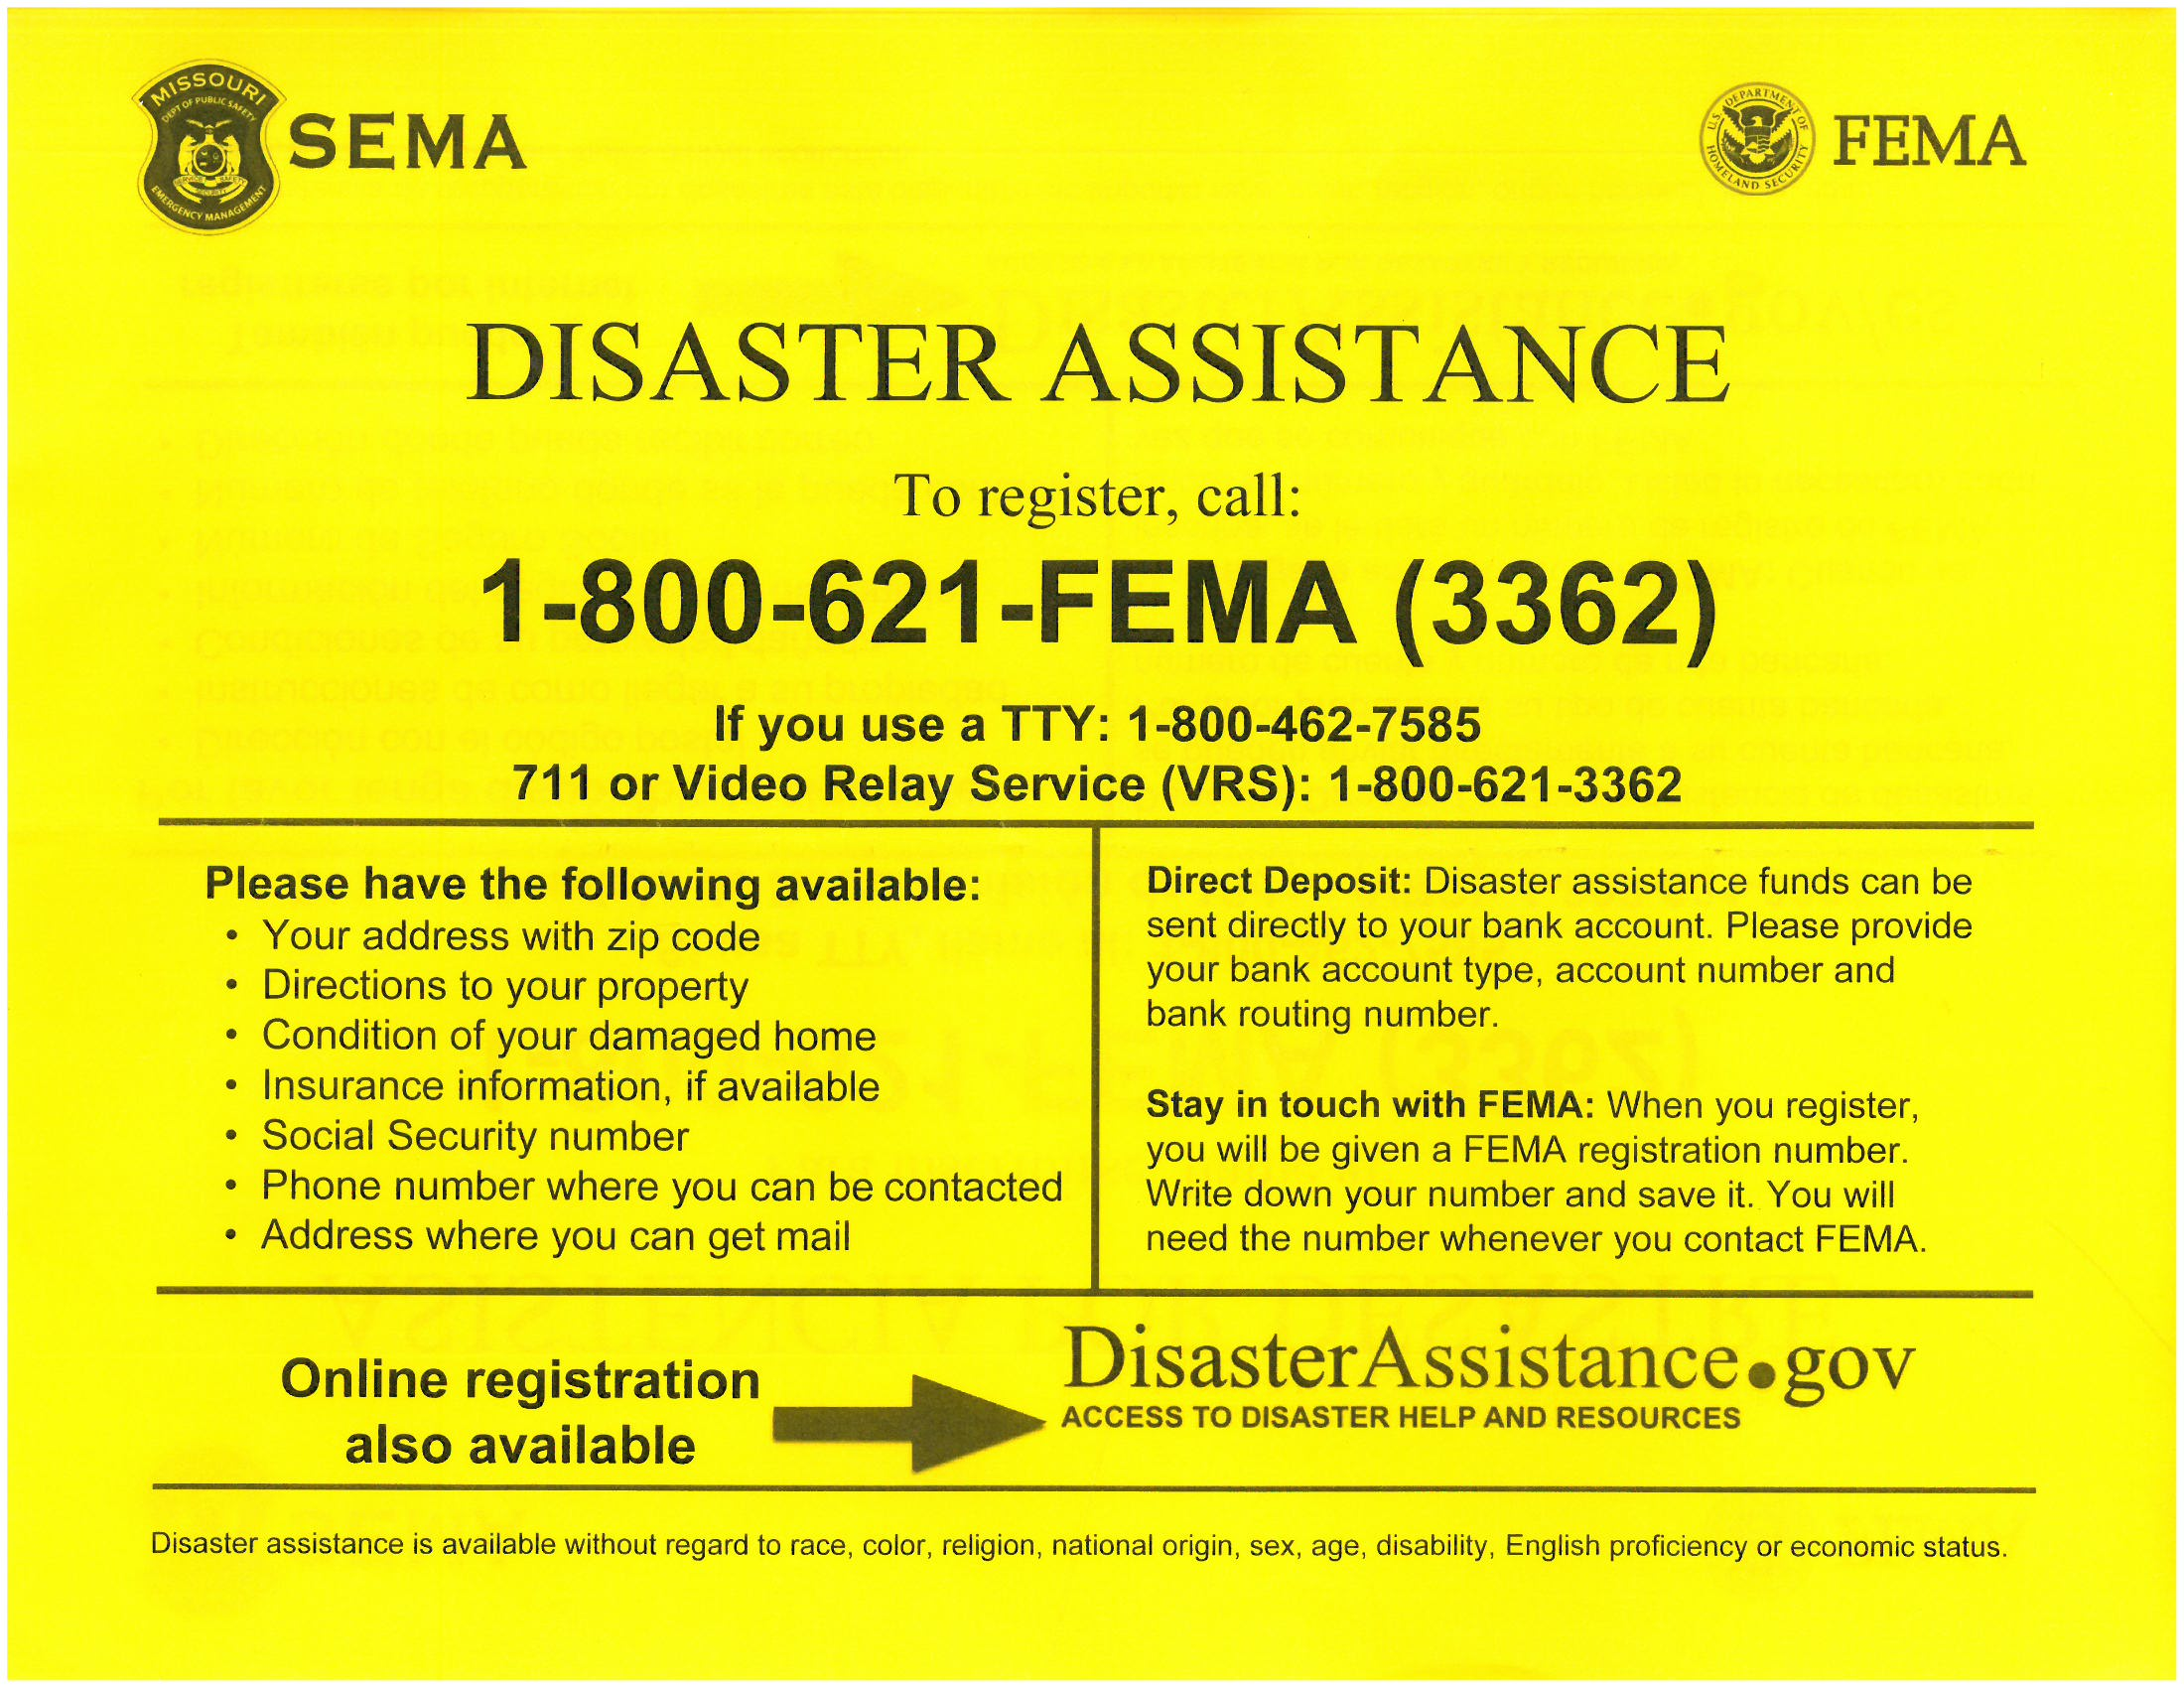 FEMA Disaster Assistance info_Page_1.jpg